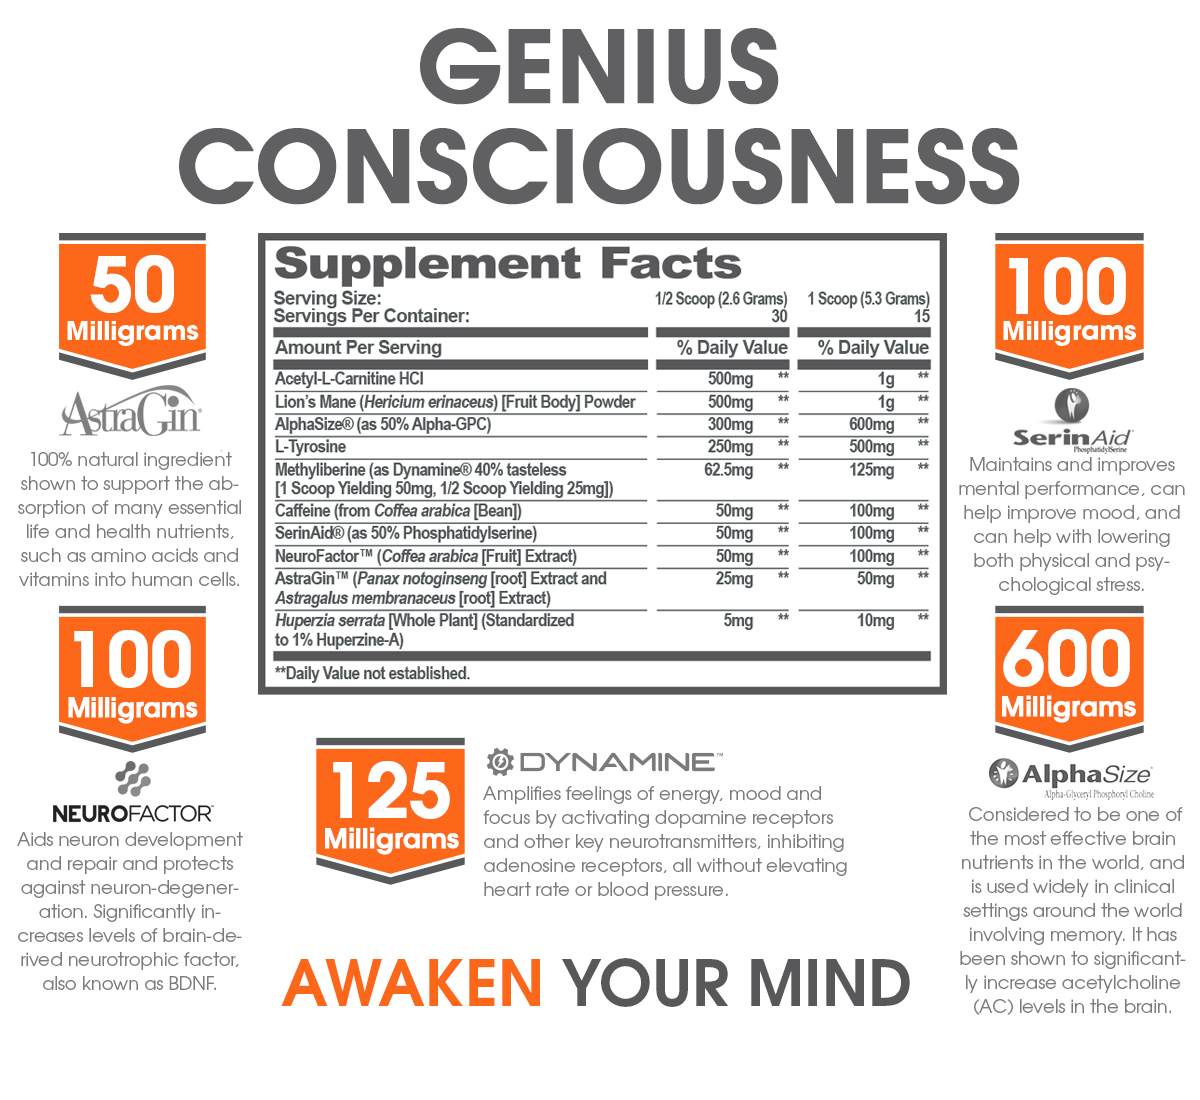 genius consciousness supplement facts